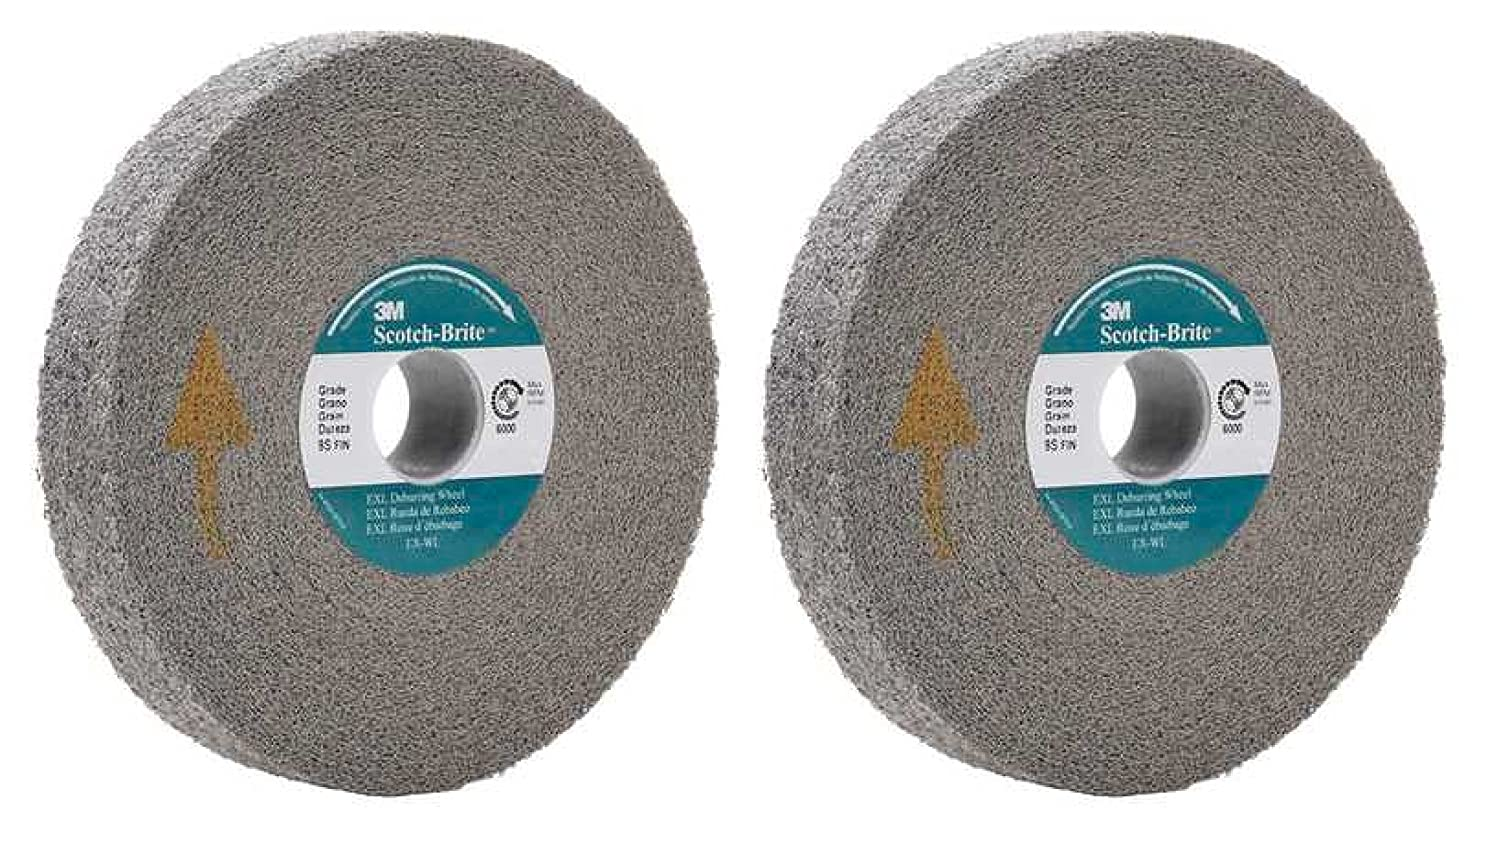 Wondrous 3M Abrasive 048011 05132 6 Scotch Brite Exl Deburring Wheels Gray Set Of 2 Gmtry Best Dining Table And Chair Ideas Images Gmtryco